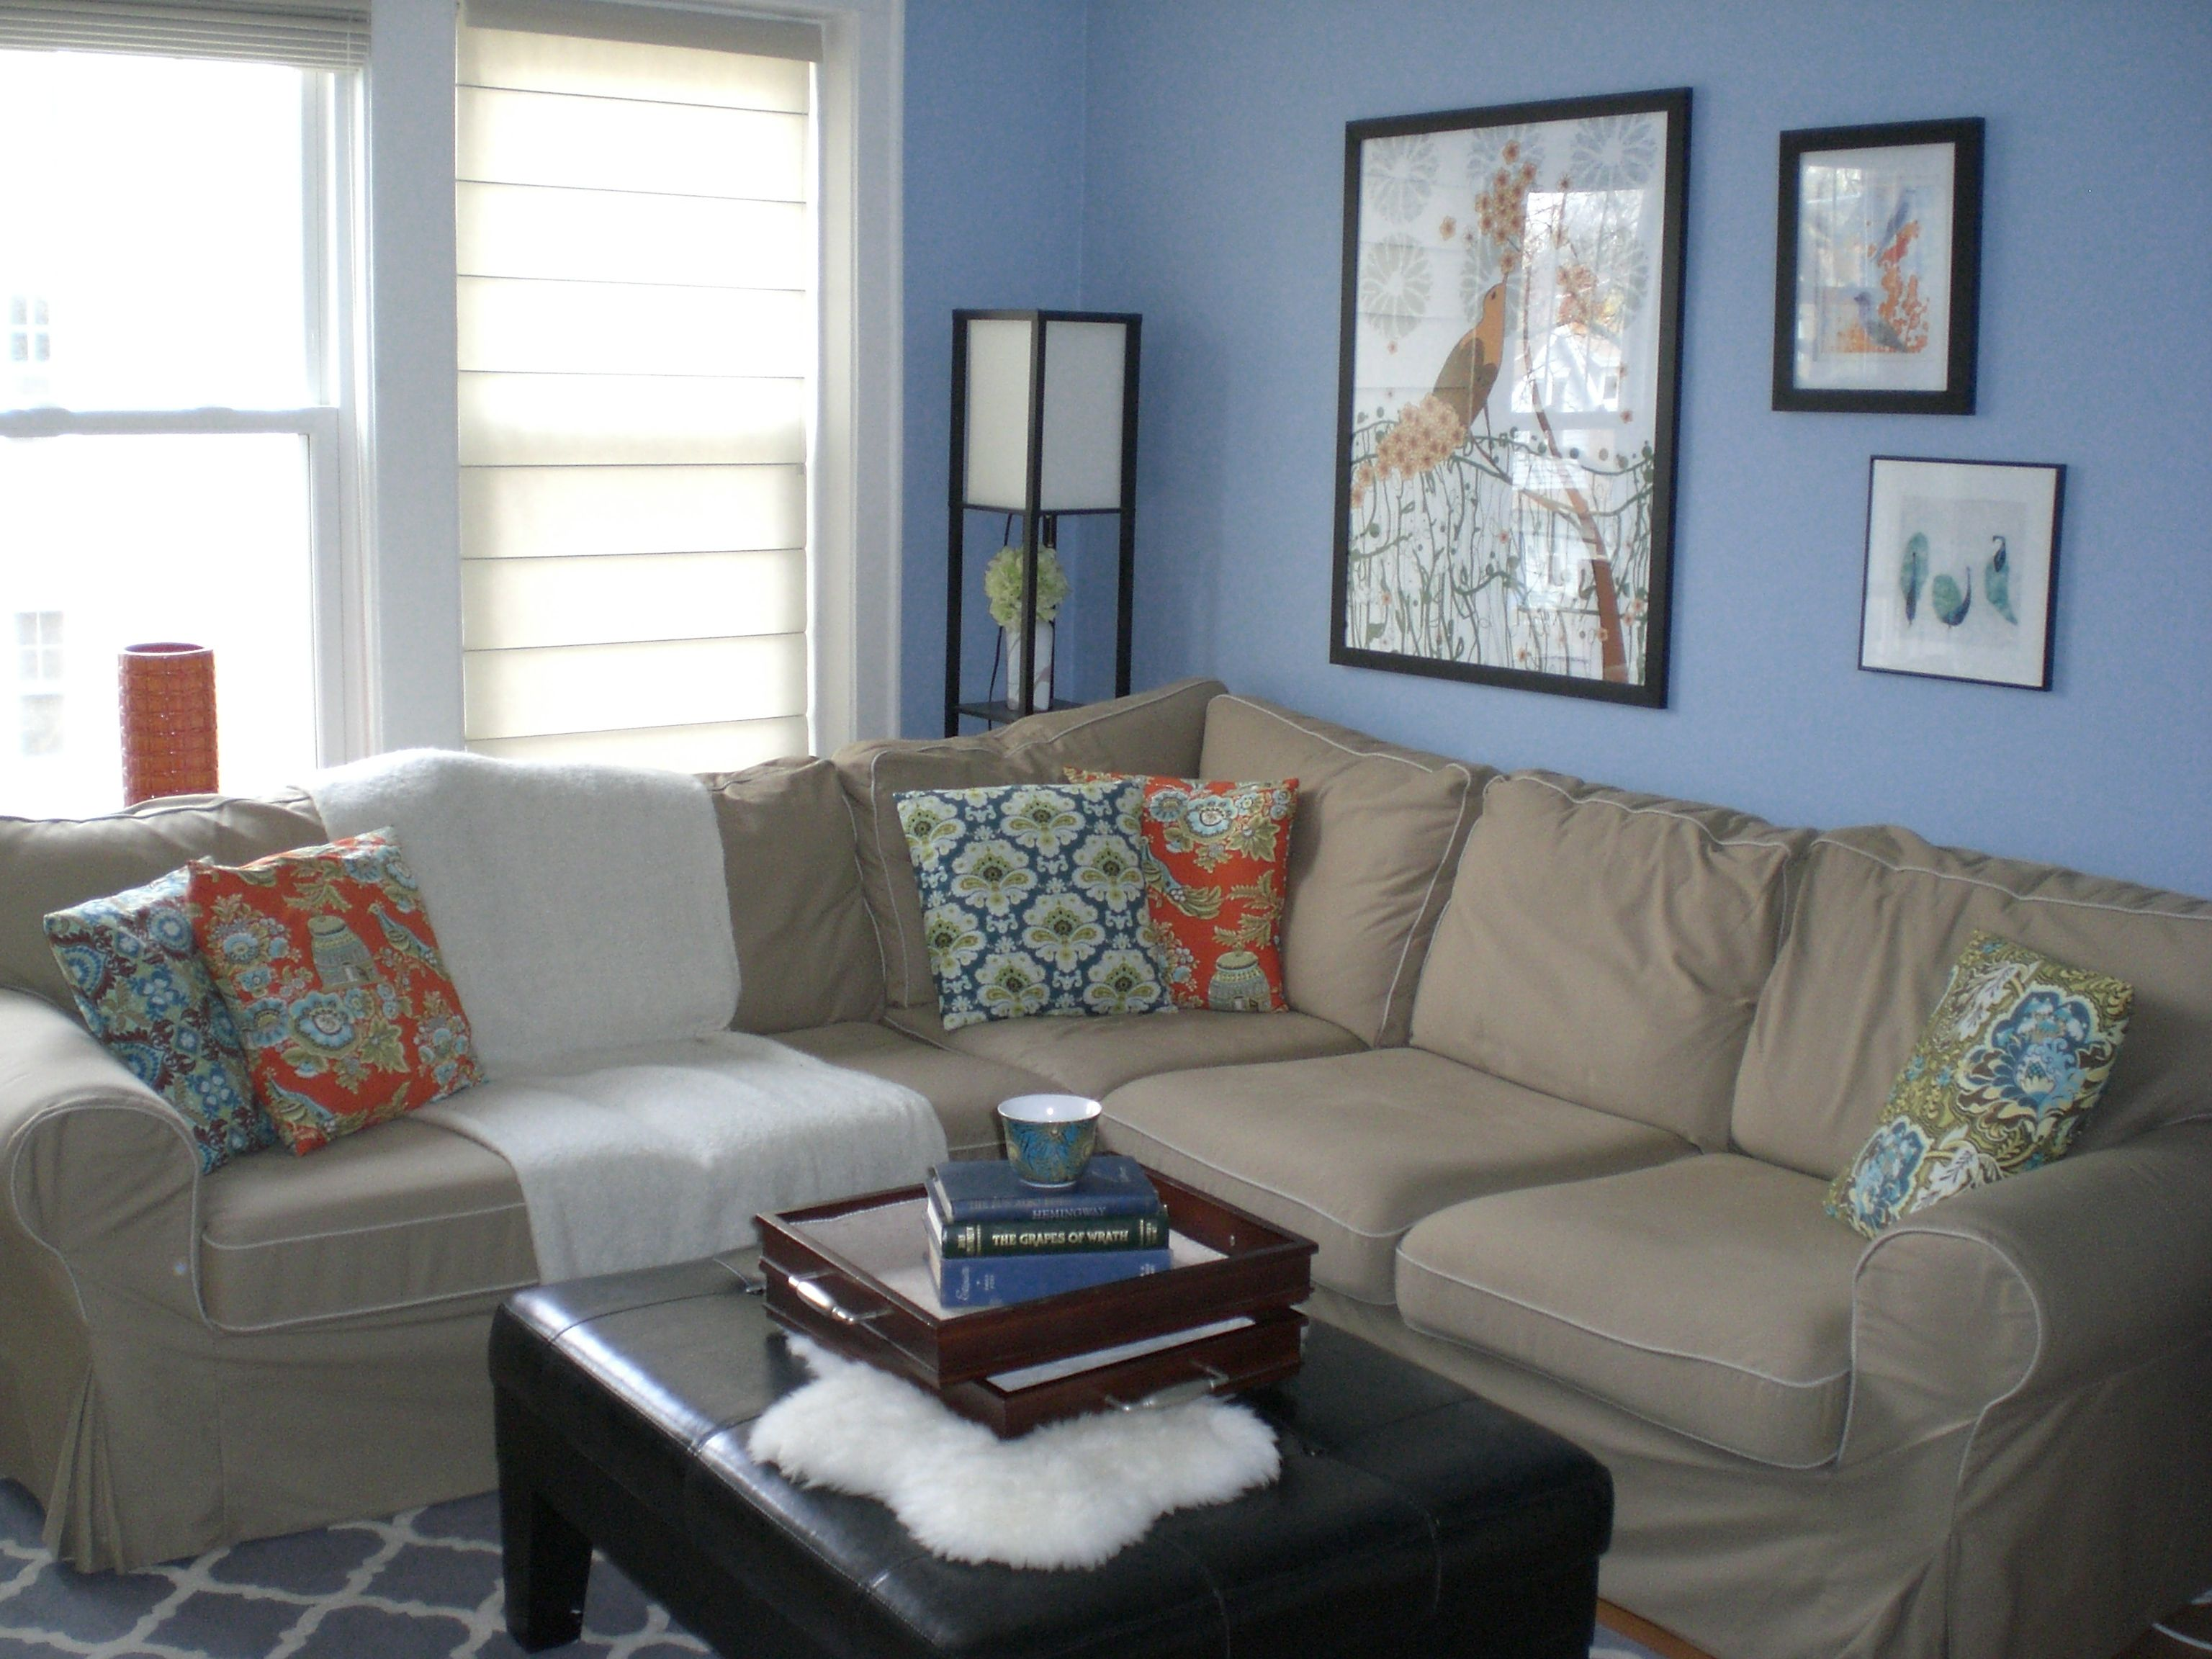 Light Blue Paint Colors For Living Room Xrkotdh Part 5